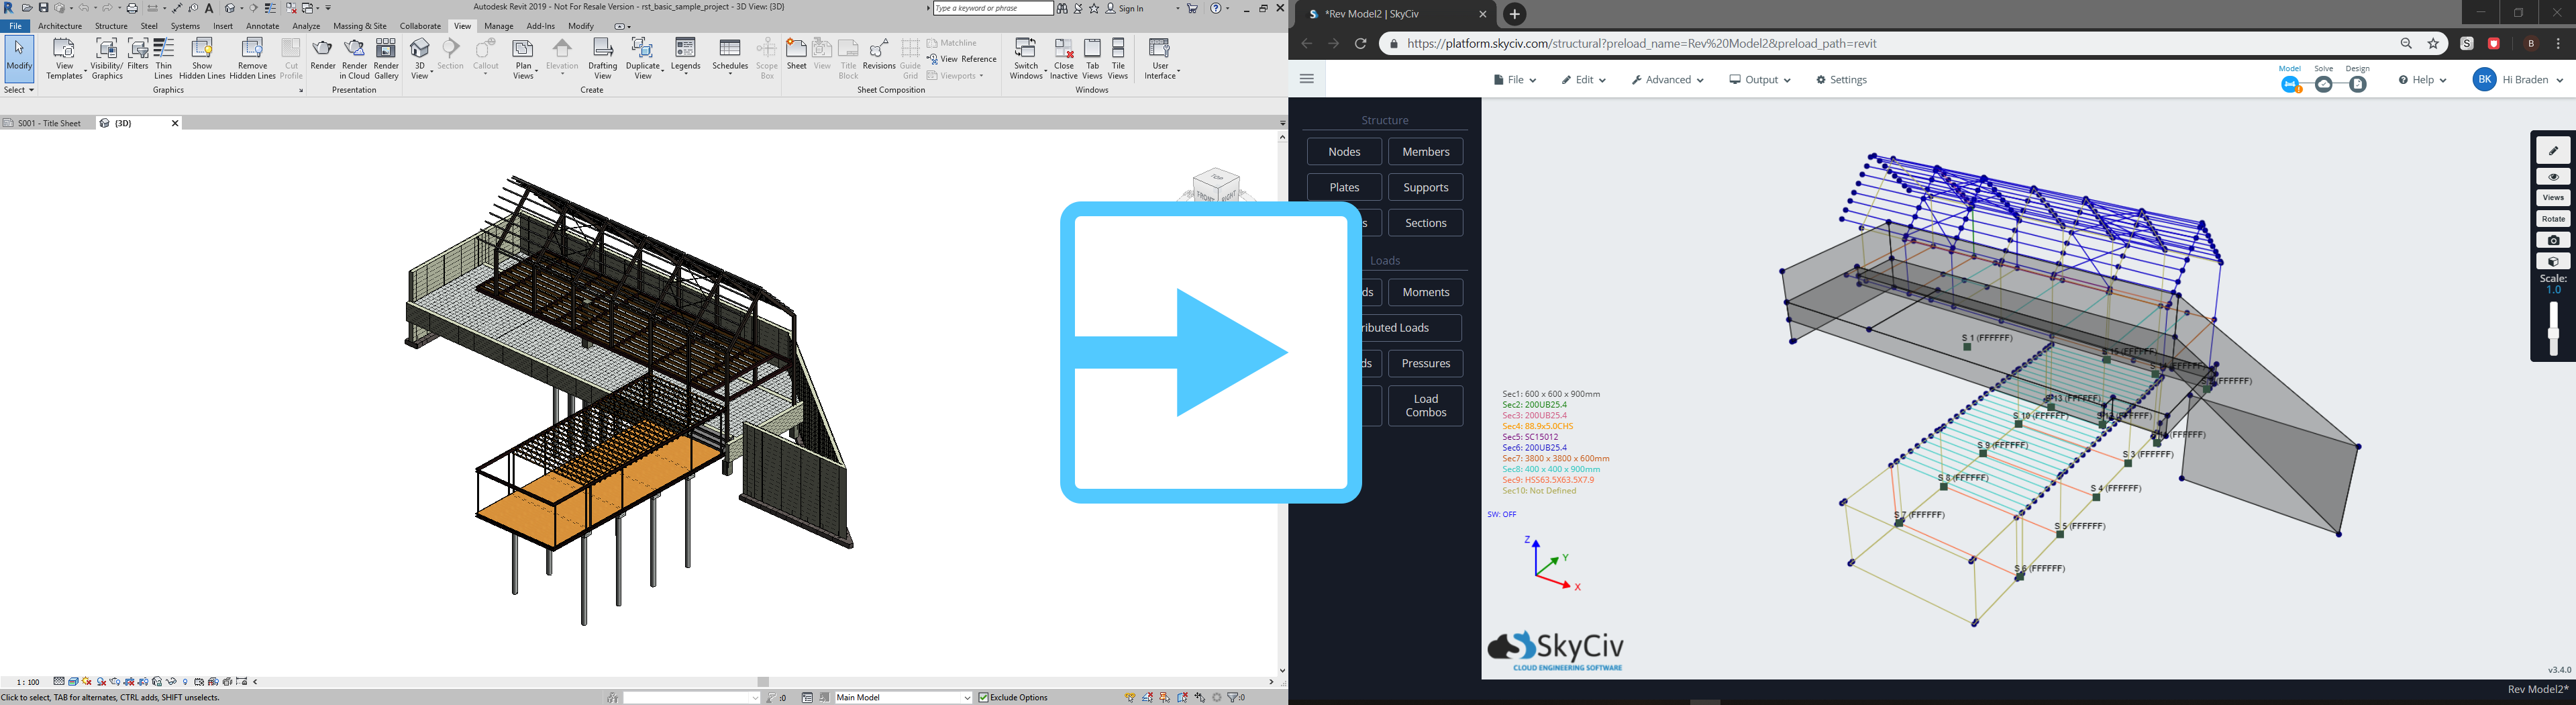 Revit to SkyCiv Software